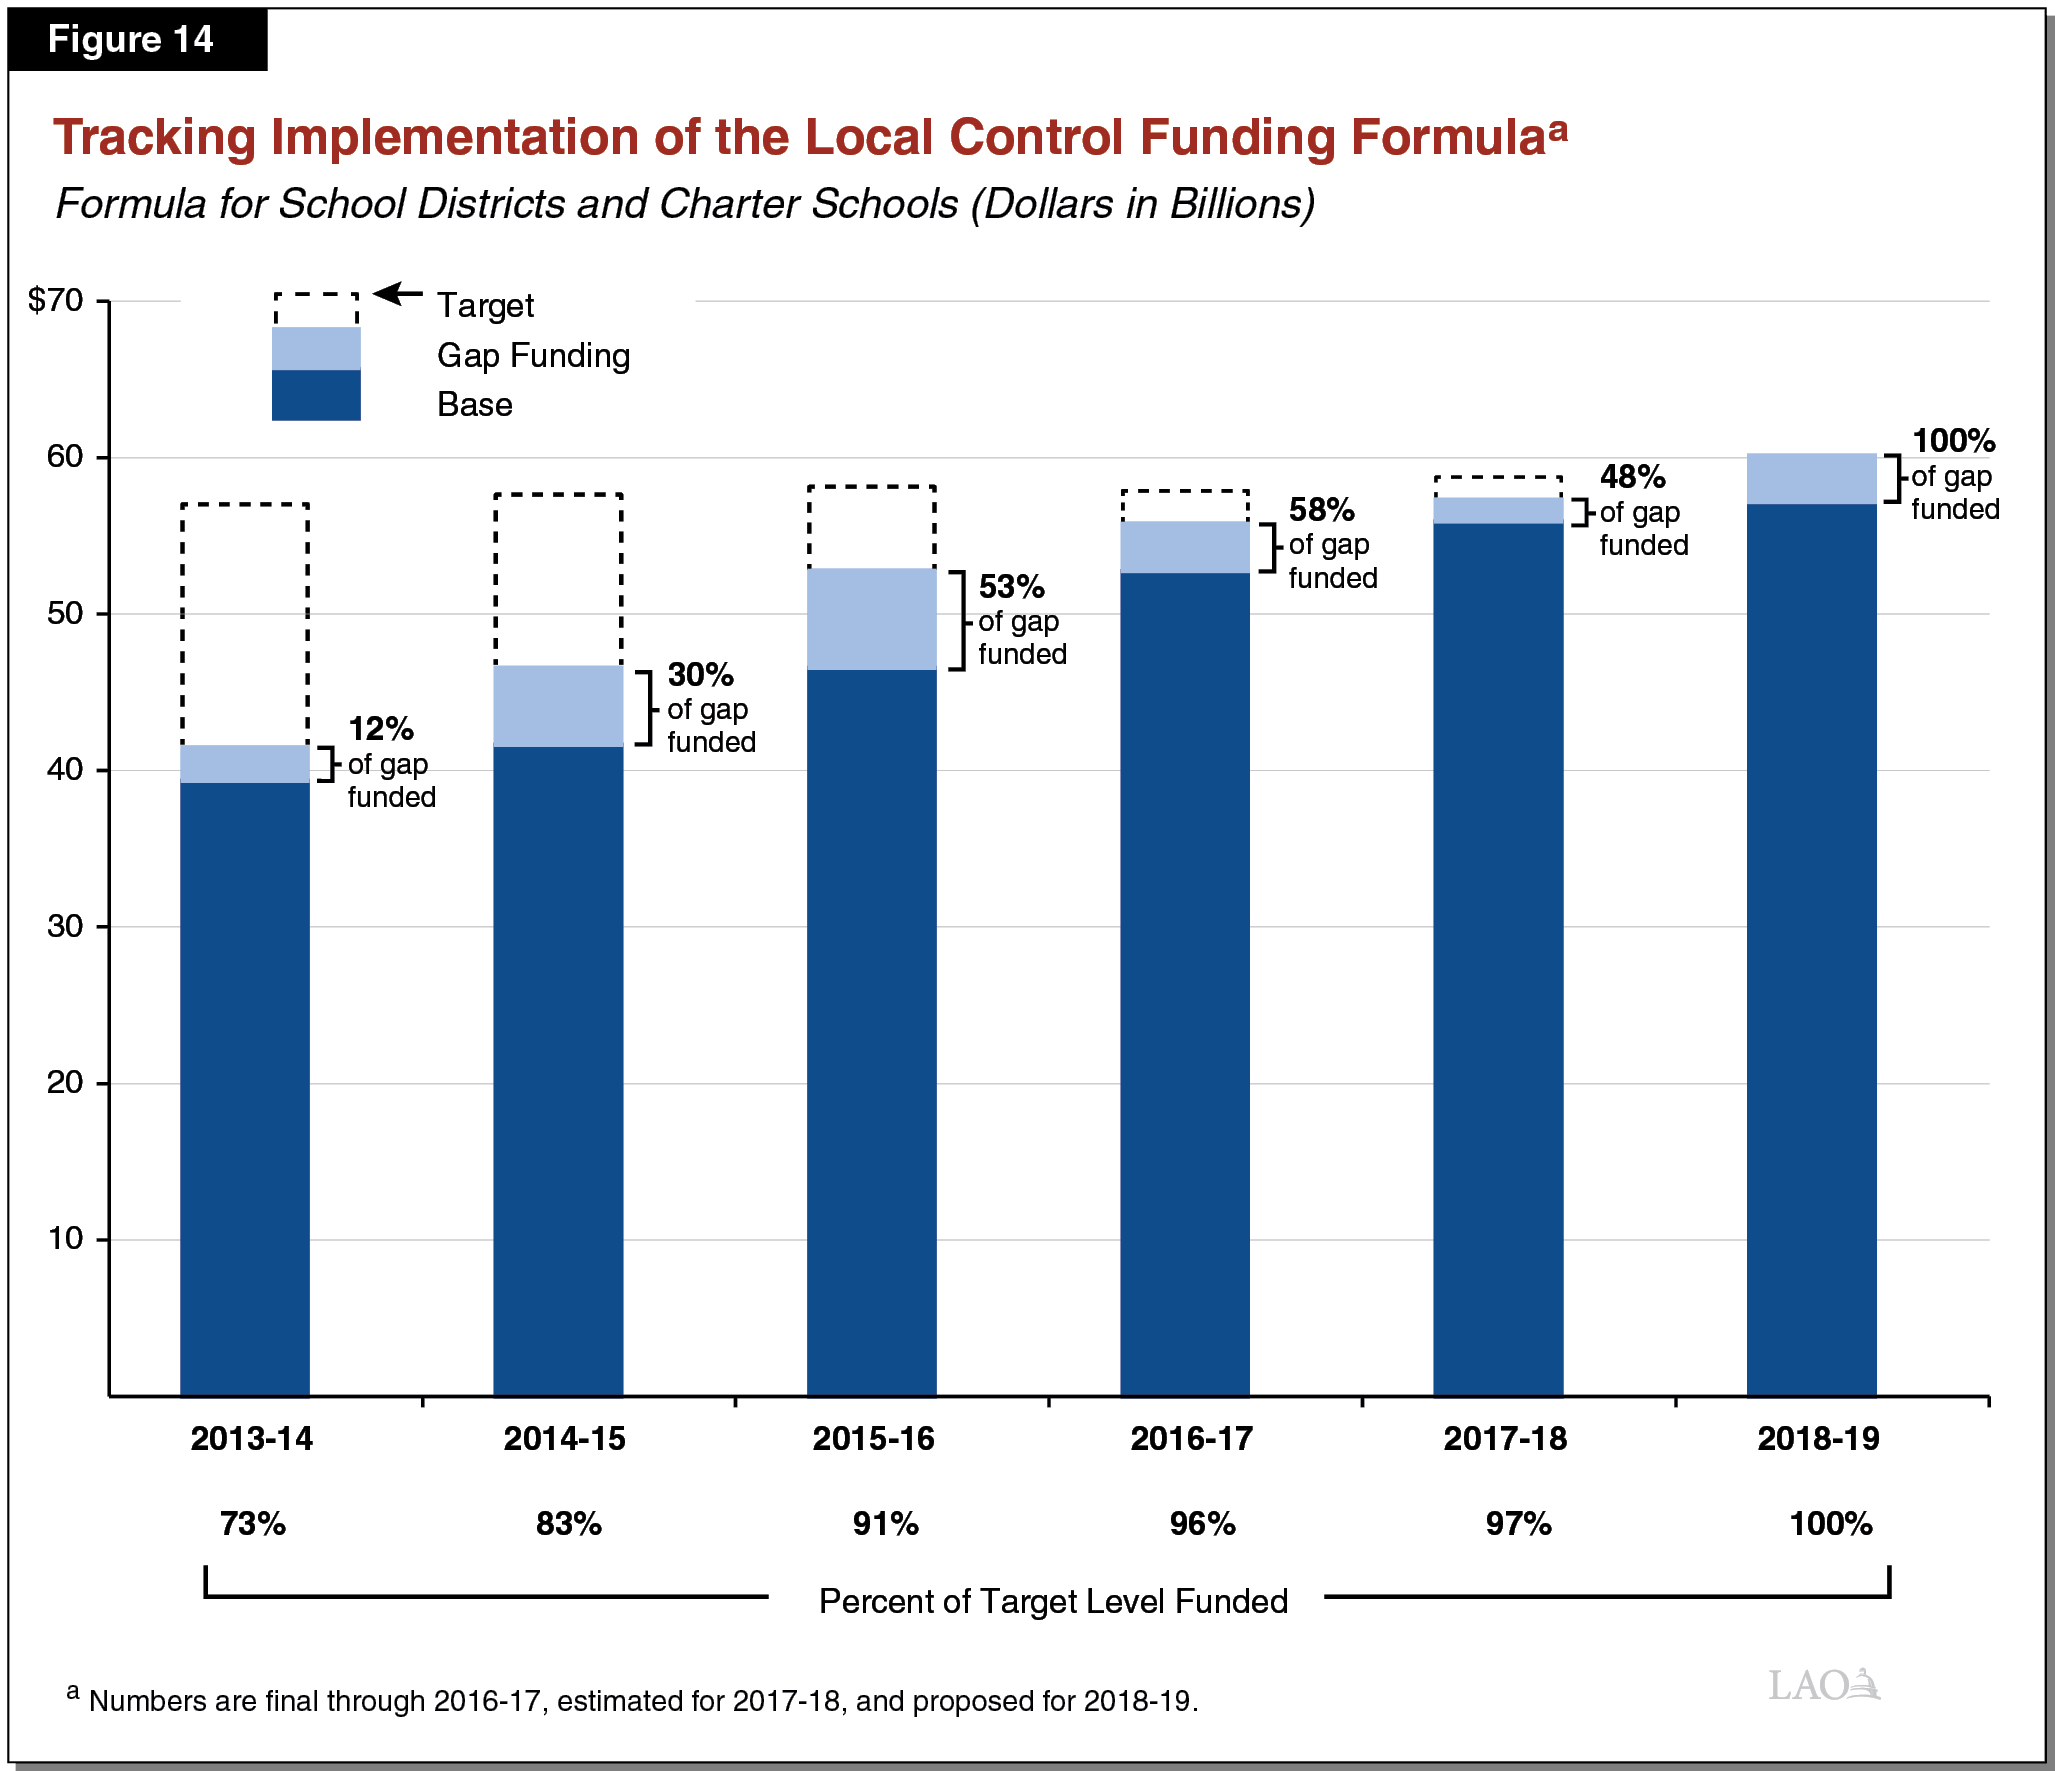 Figure 14 - Tracking Implementation of the Local Control Funding Formula